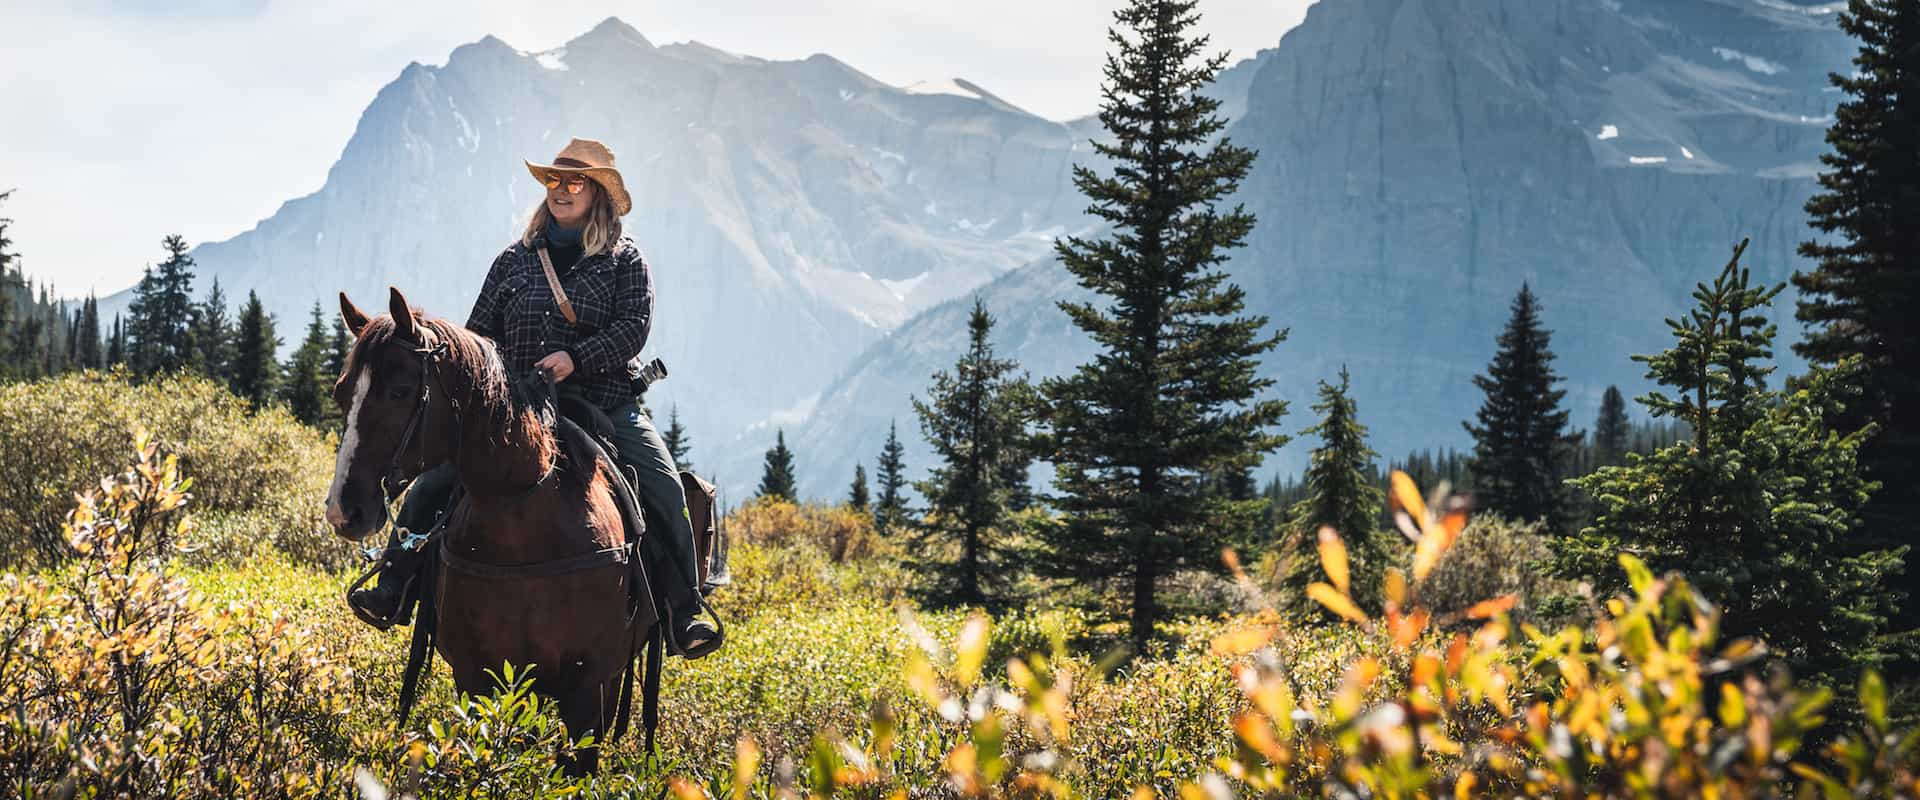 Return to Halfway Lodge from Allenby Pass with Banff Trail Riders in the Canadian Rockies